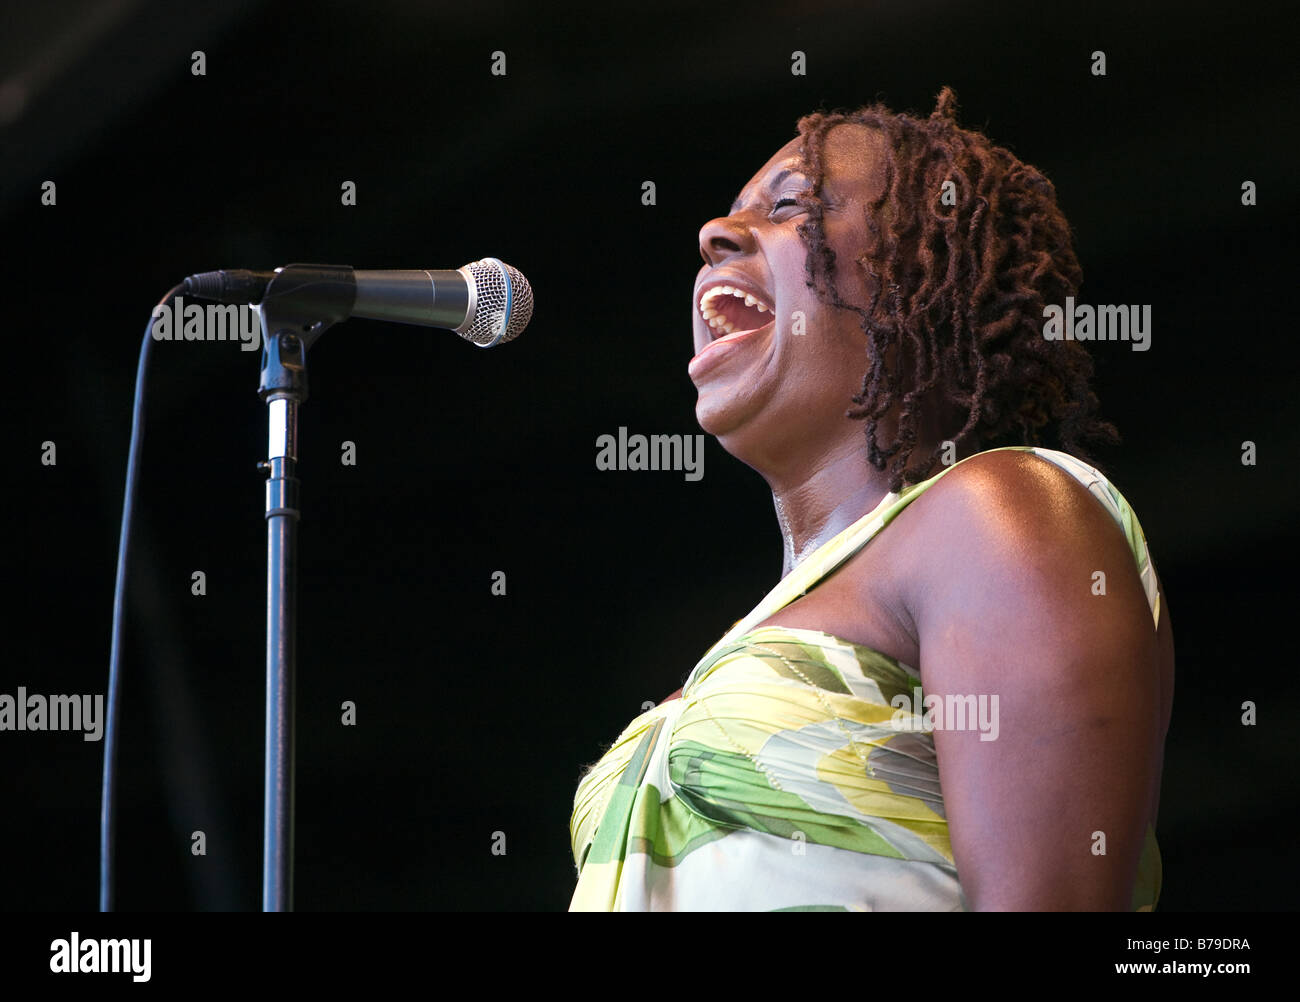 LEDISI sings her heart out at the 51st MONTEREY JAZZ FESTIVAL MONTEREY CALIFORNIA - Stock Image